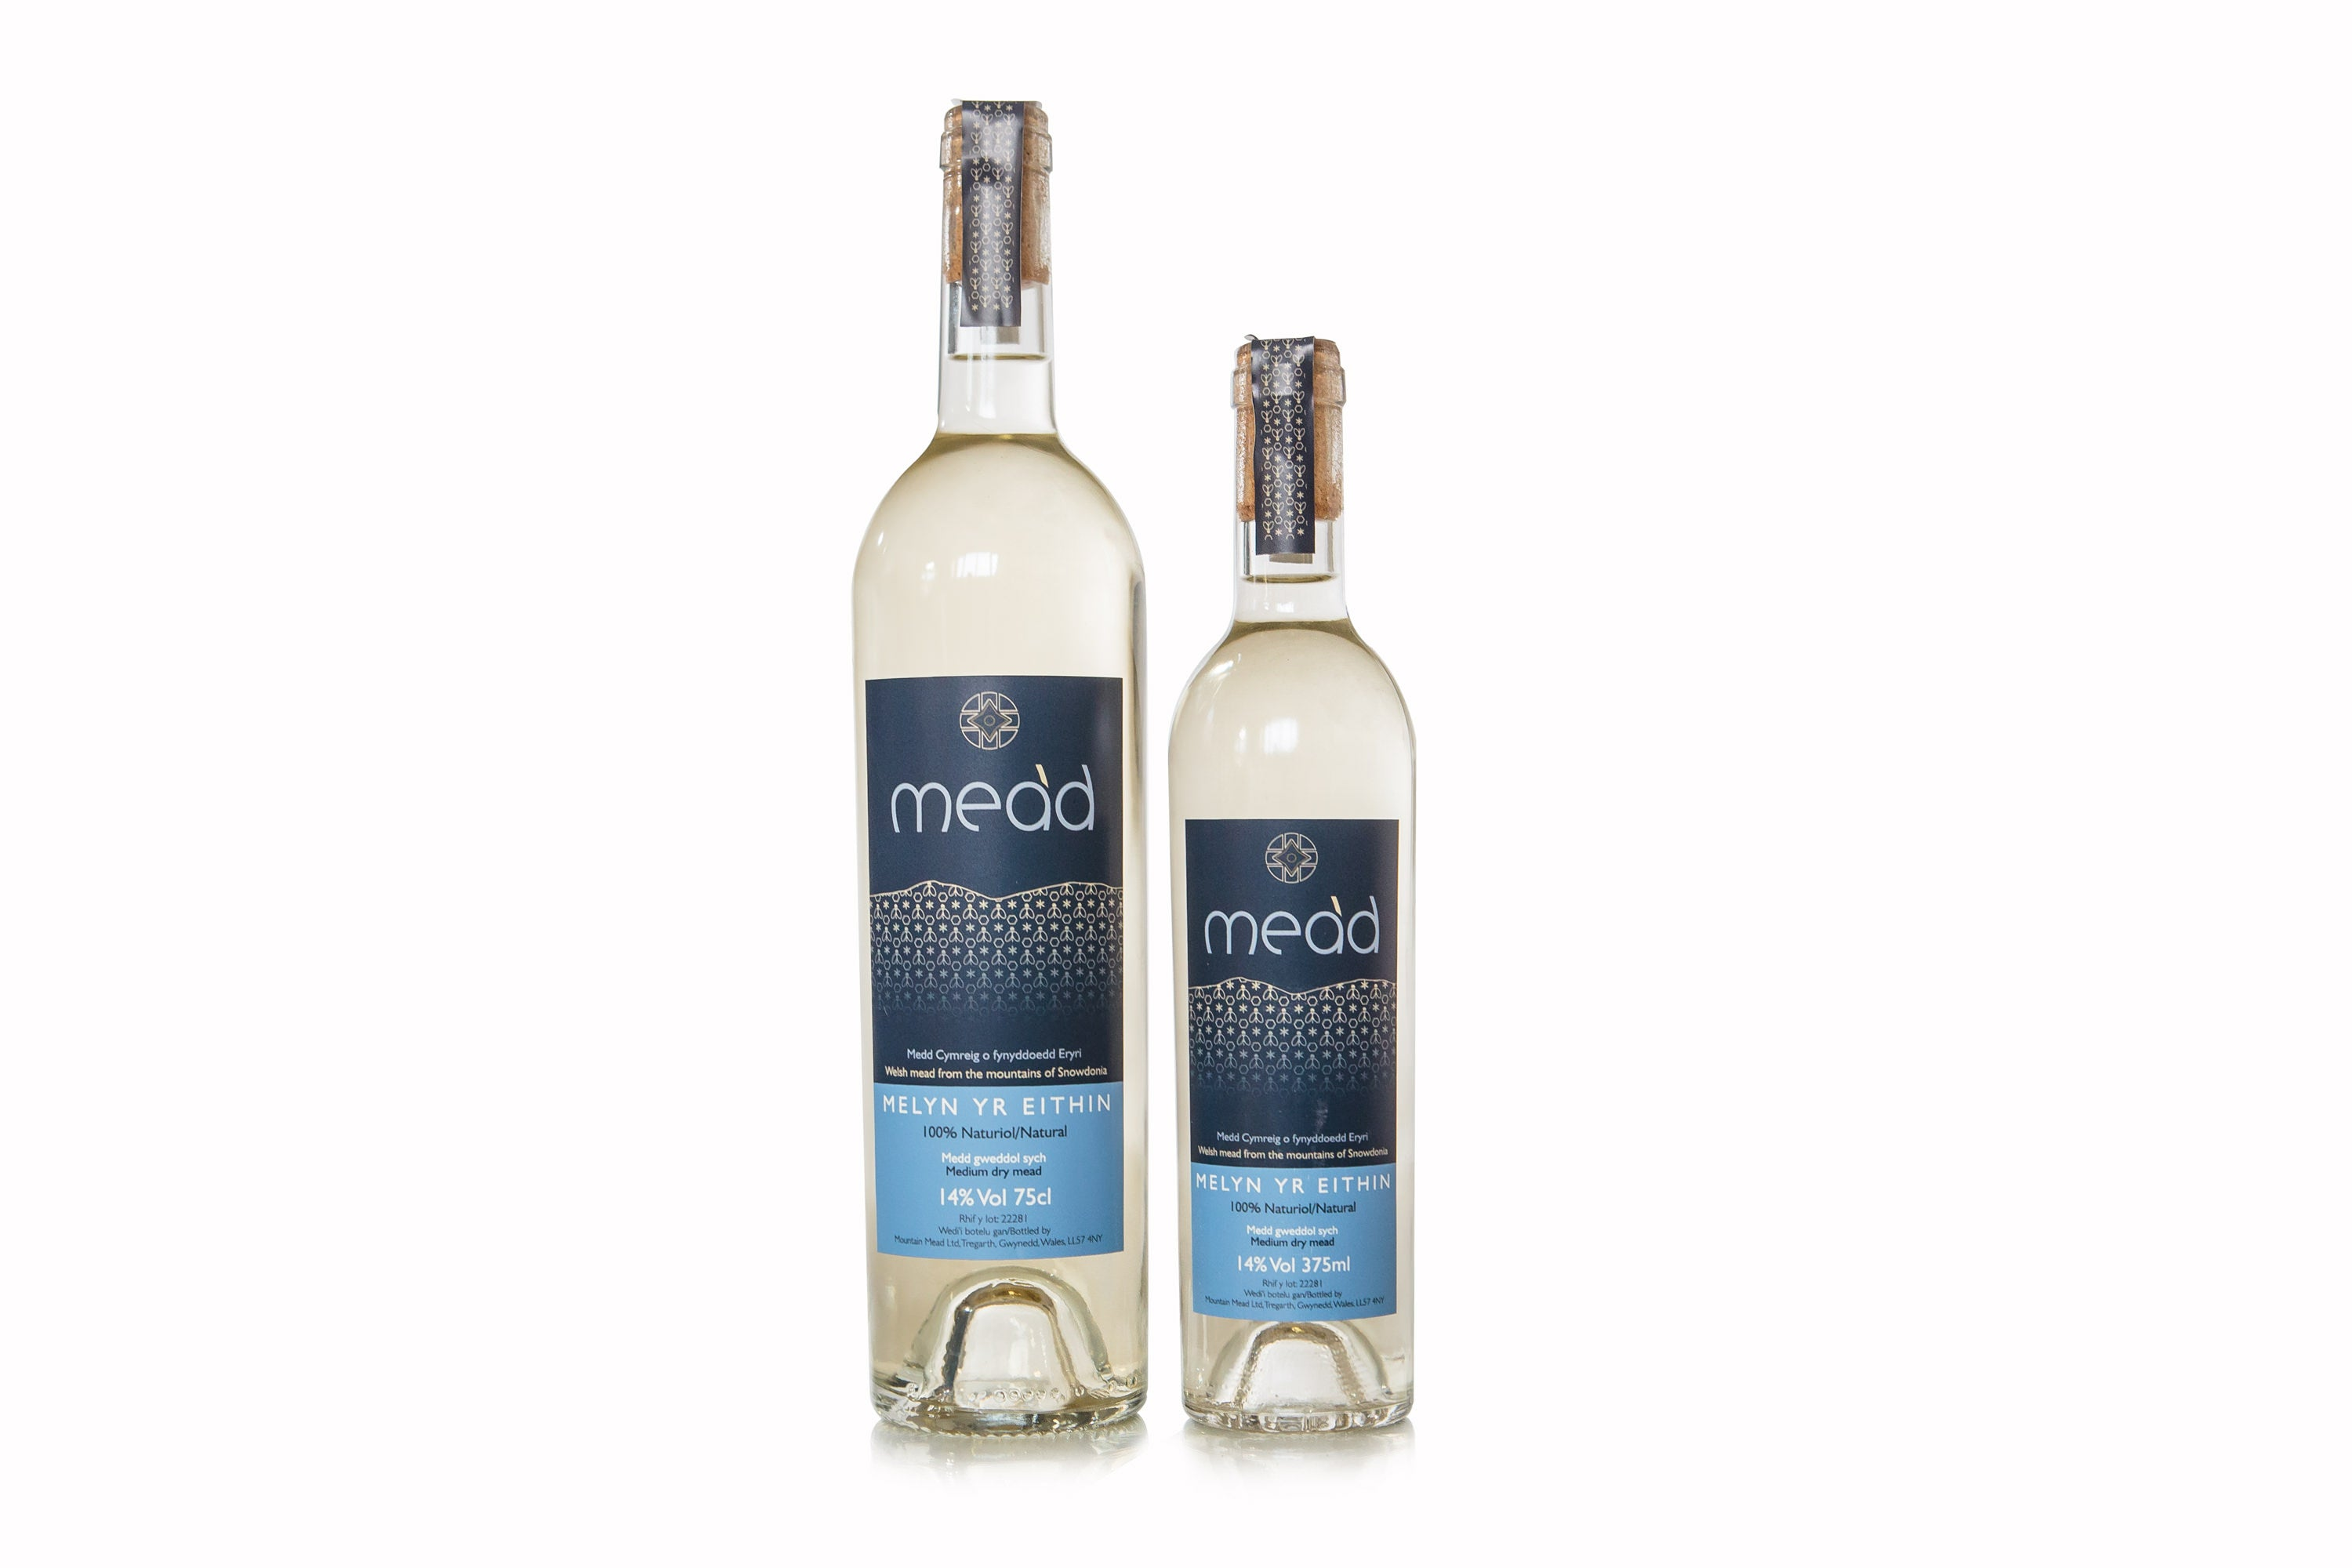 Melyn Yr Eithin 375ml and 750ml medium dry traditional Welsh mead in glass bottles with cork closures